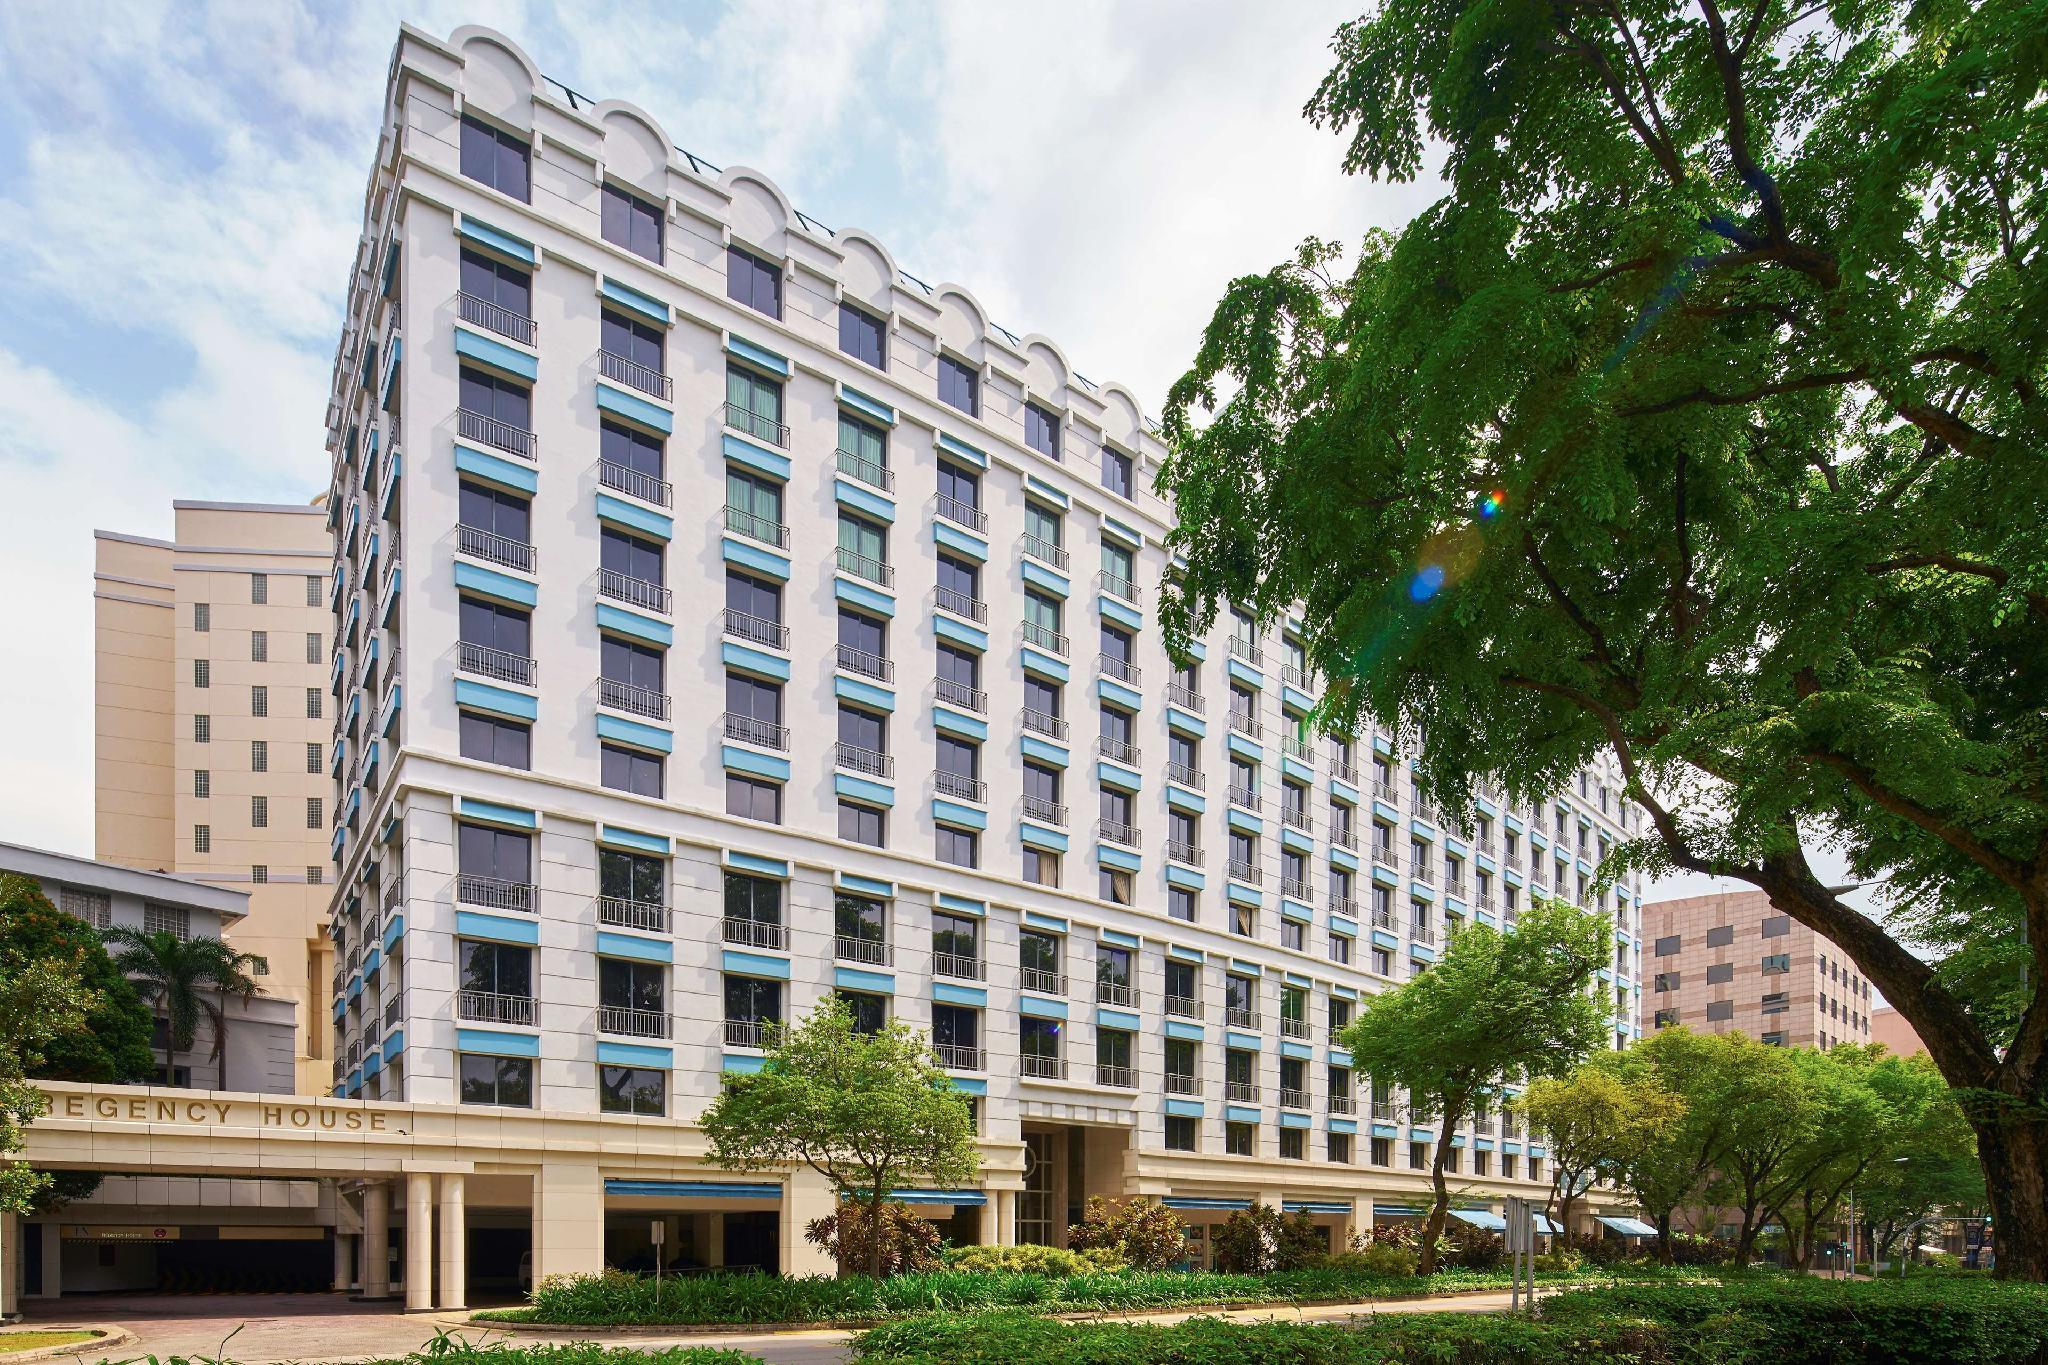 Regency House by Far East Hospitality, Orchard